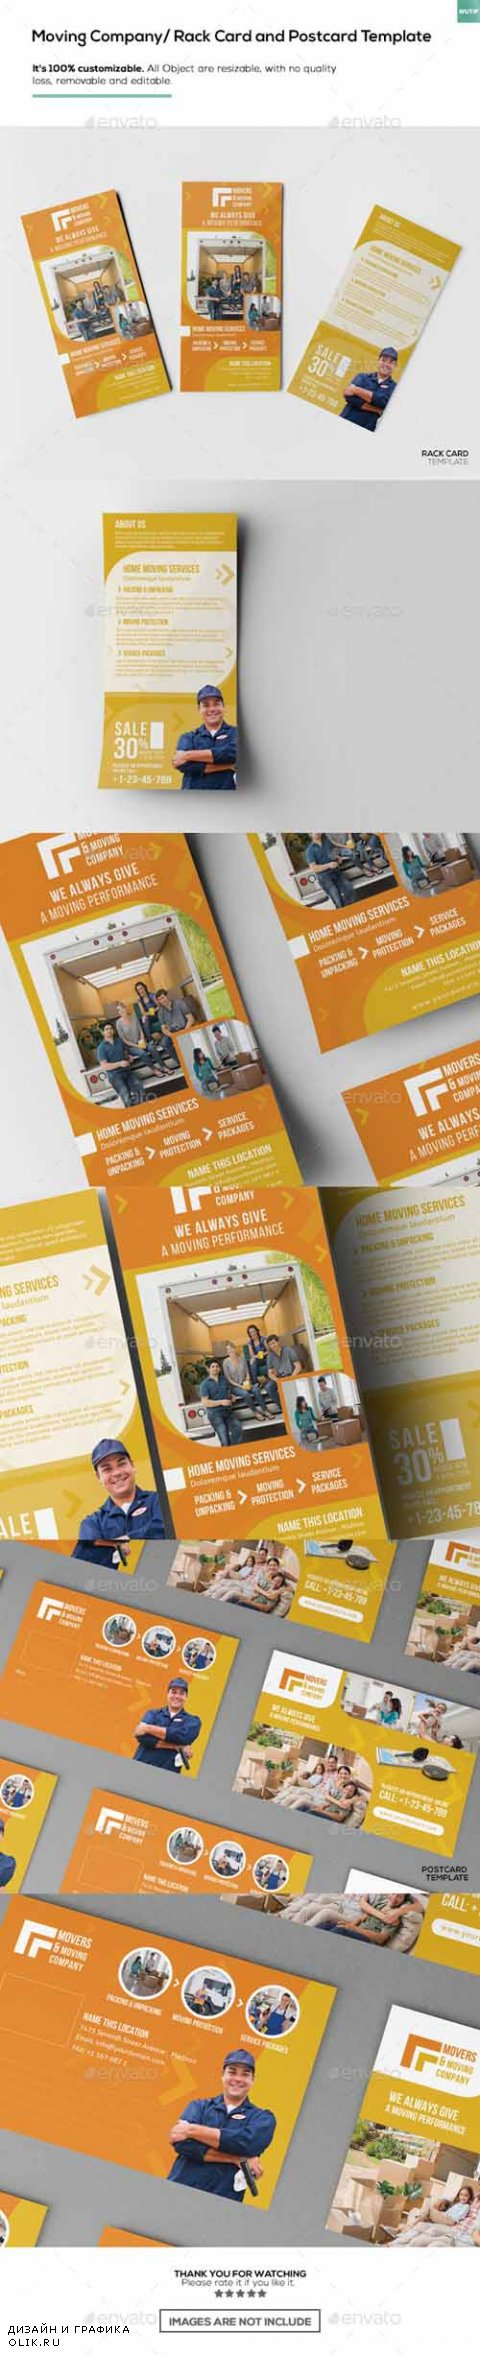 Moving Company / Rackcardand Postcard Template 16895930